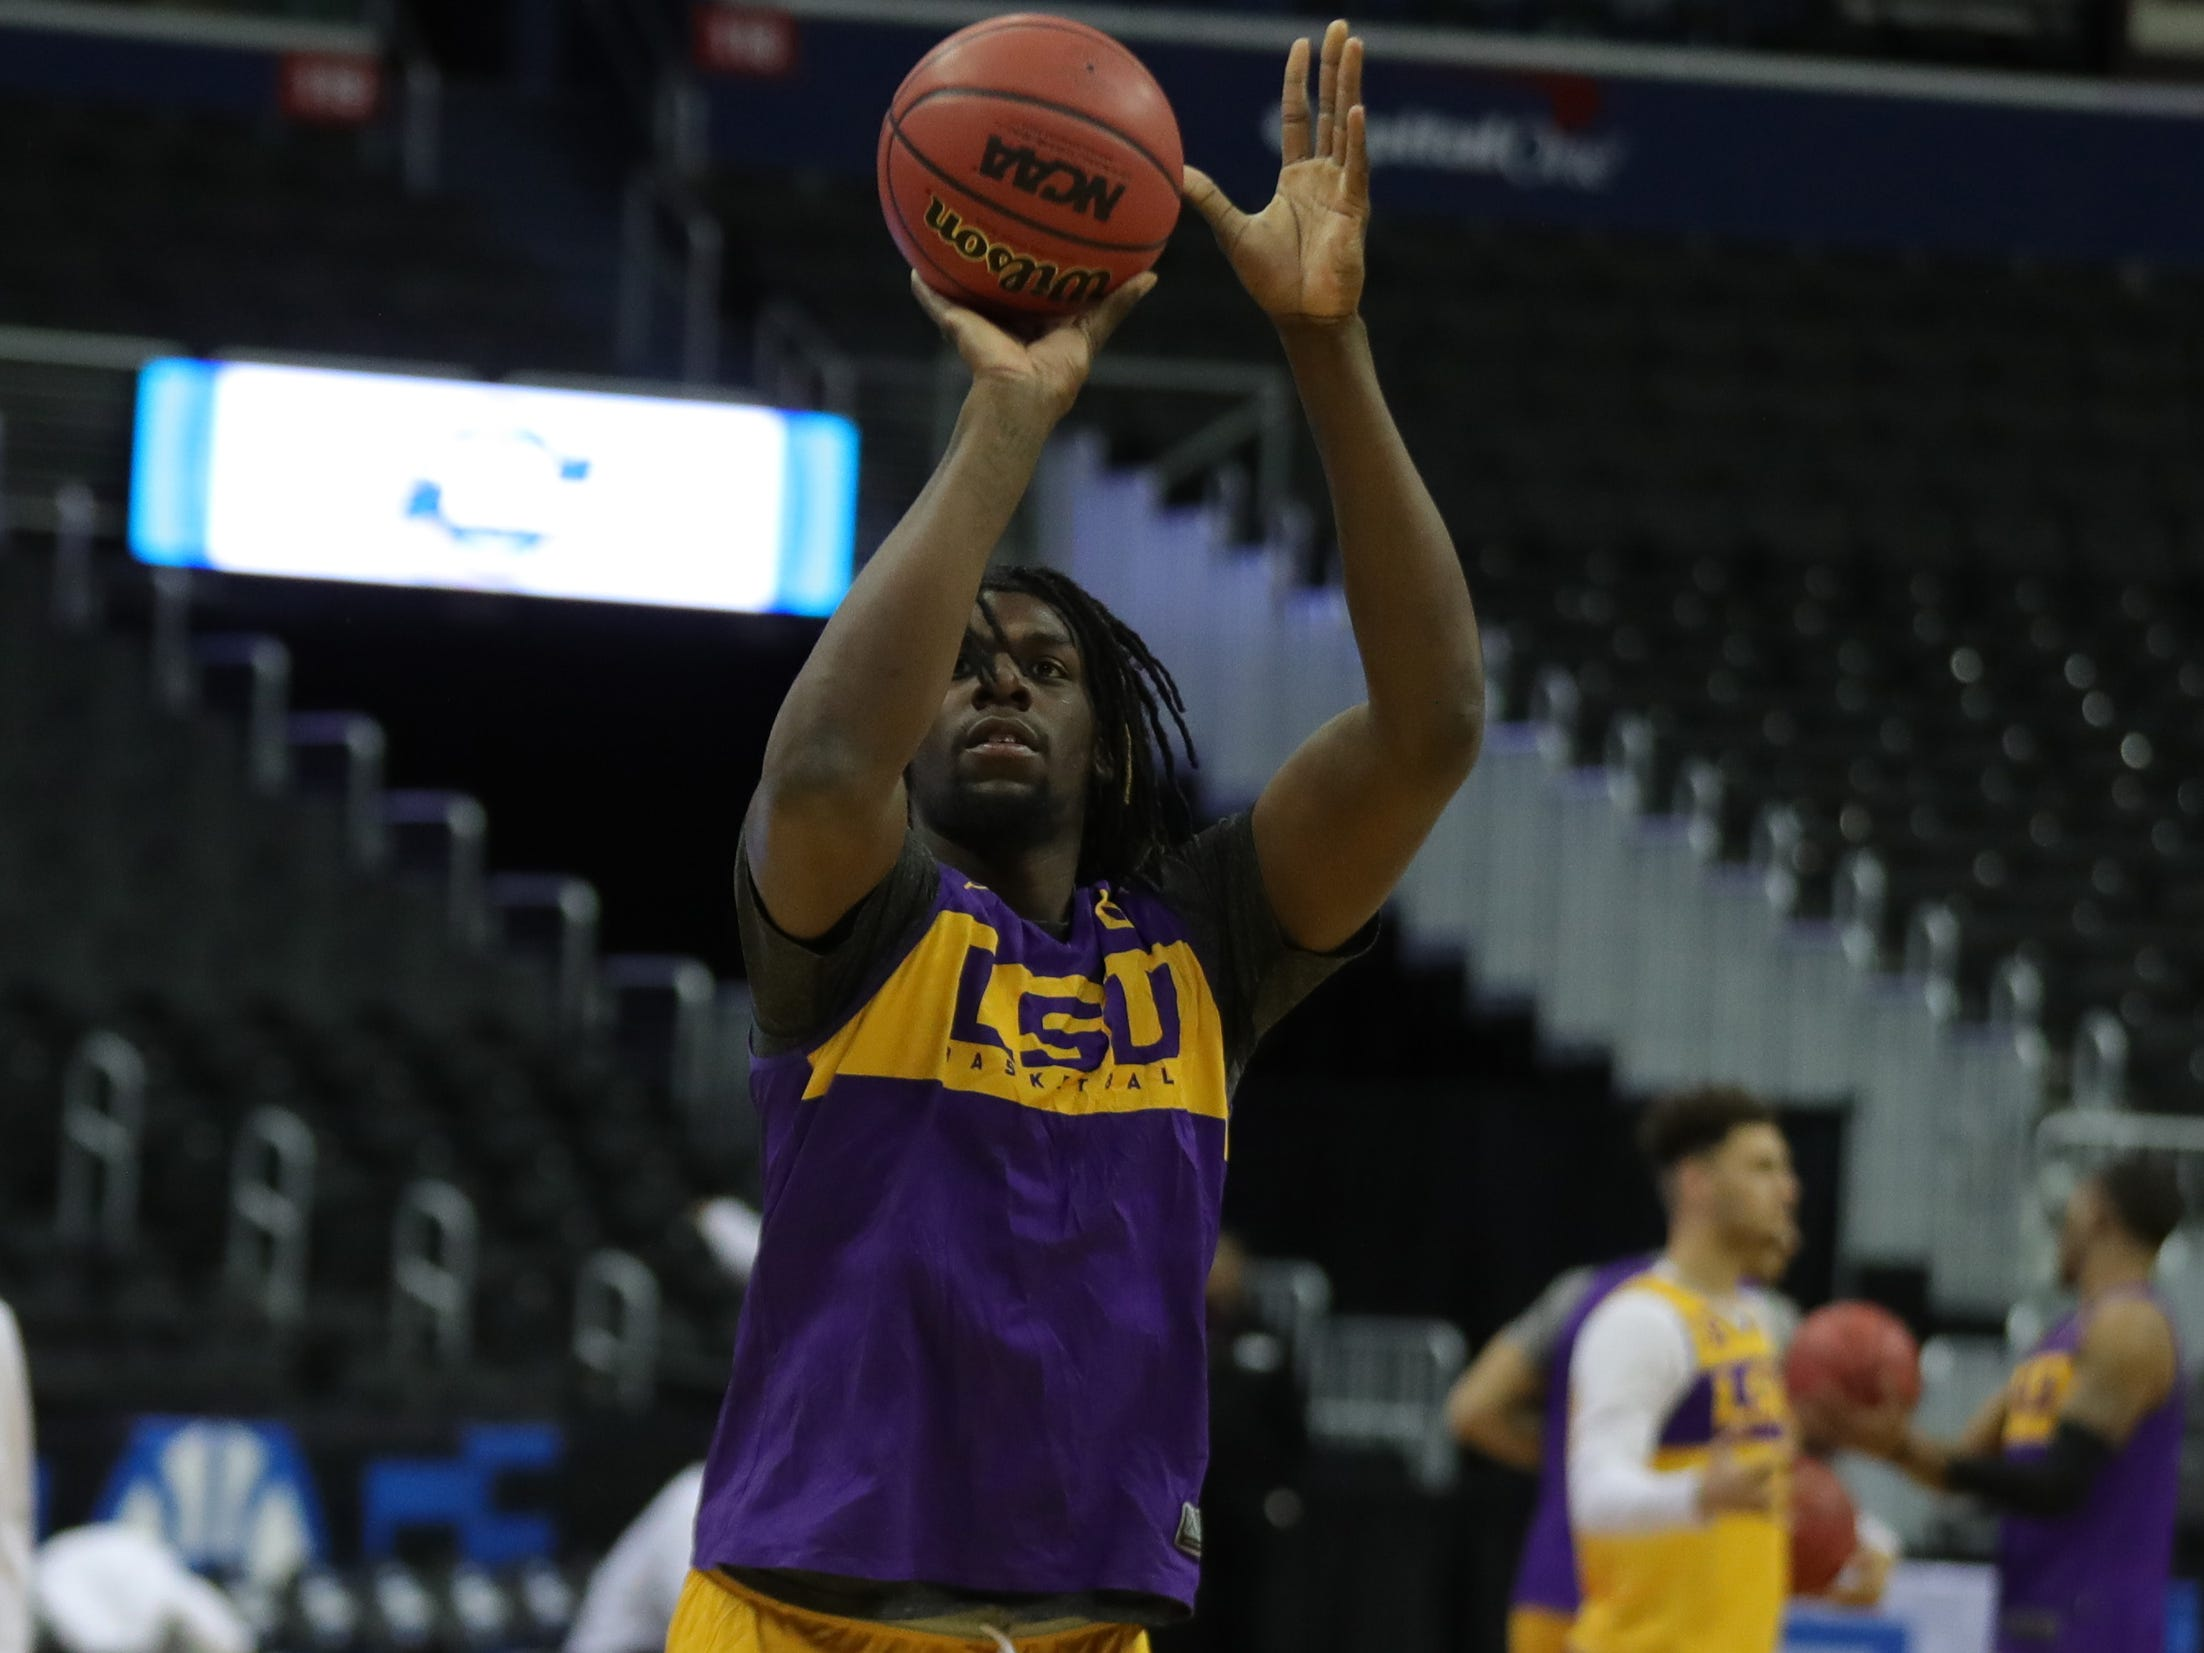 LSU forward Naz Reid practices for their Sweet 16 game against Michigan State, Thursday, March 28, 2019 at Capital One Arena in Washington, D.C.